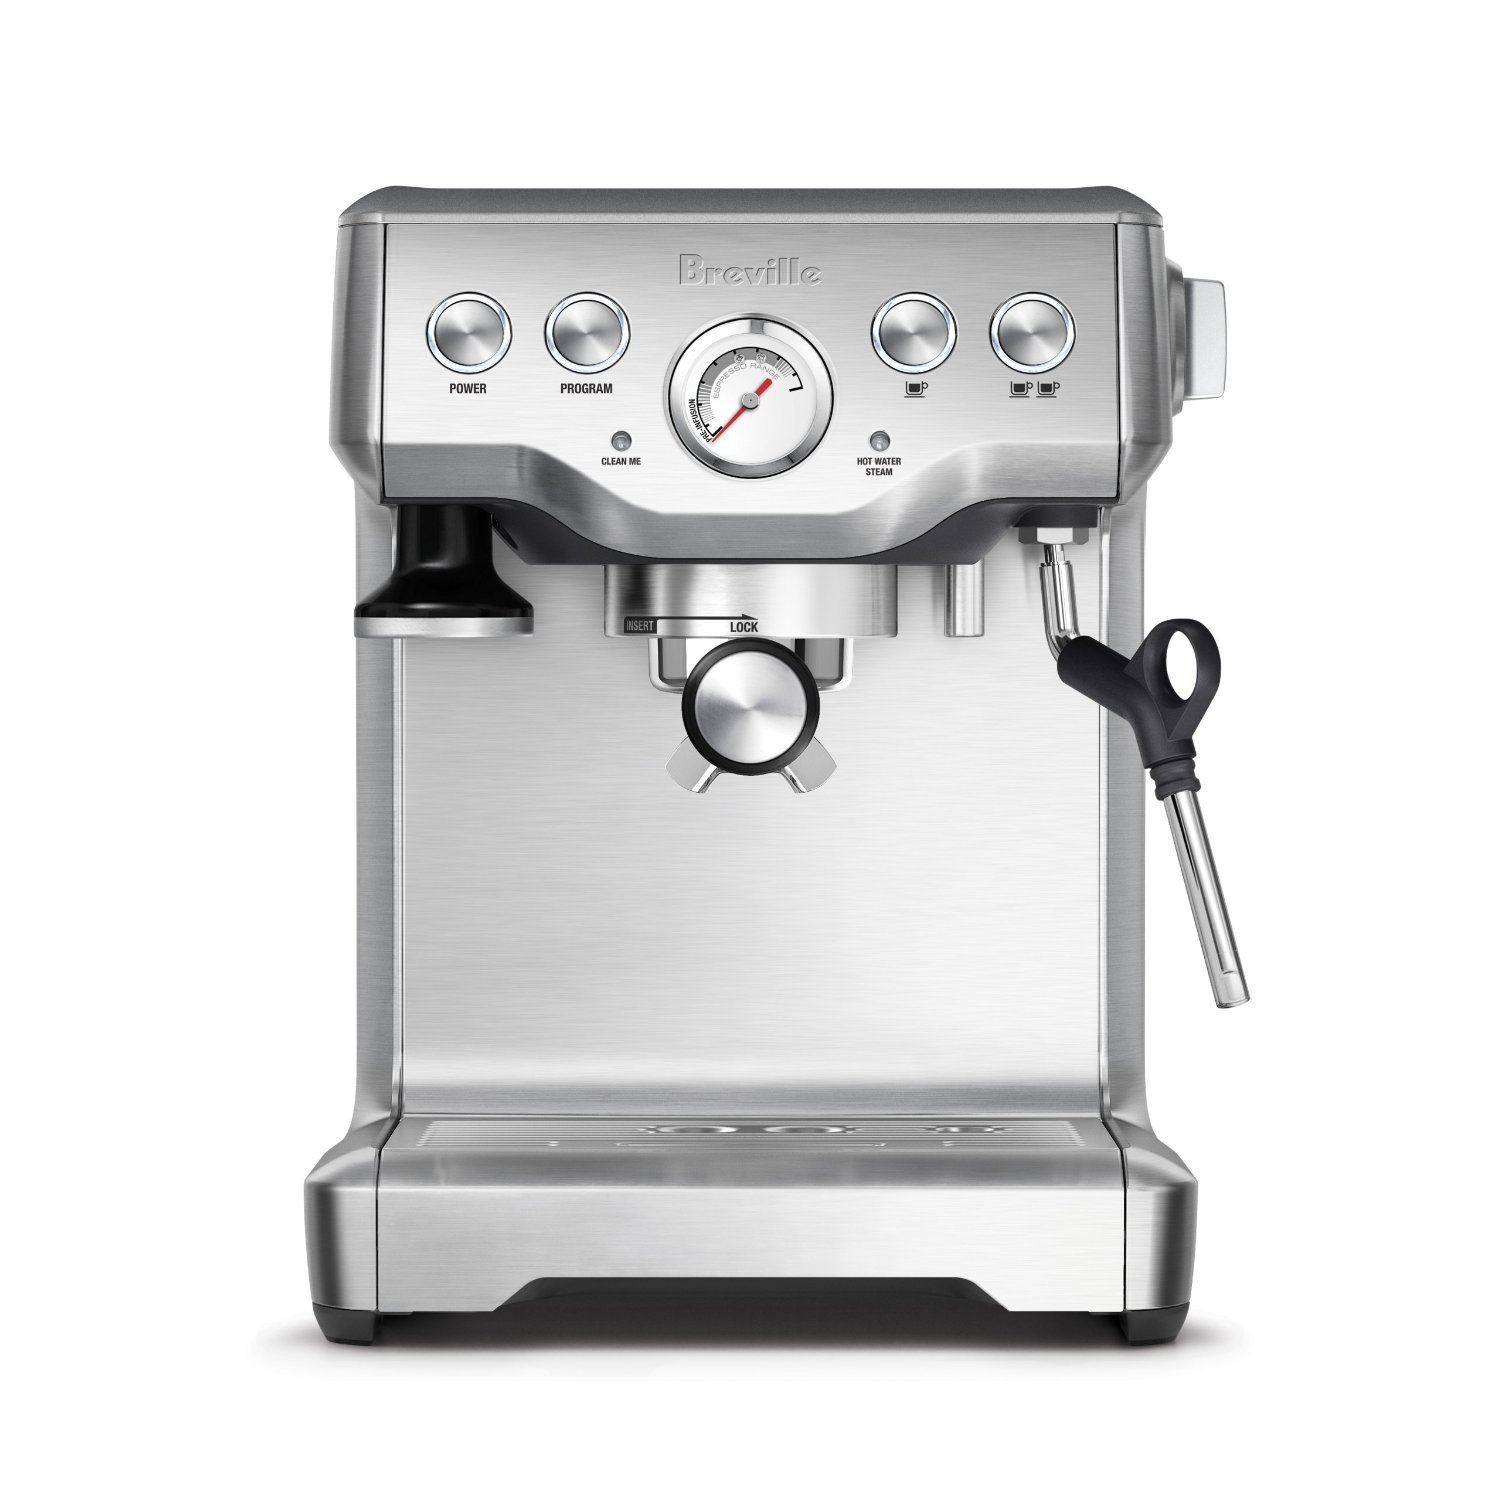 Breville Coffee Maker No Water : Breville BES840XL The Infuser Espresso Machine Review - Coffee Drinker